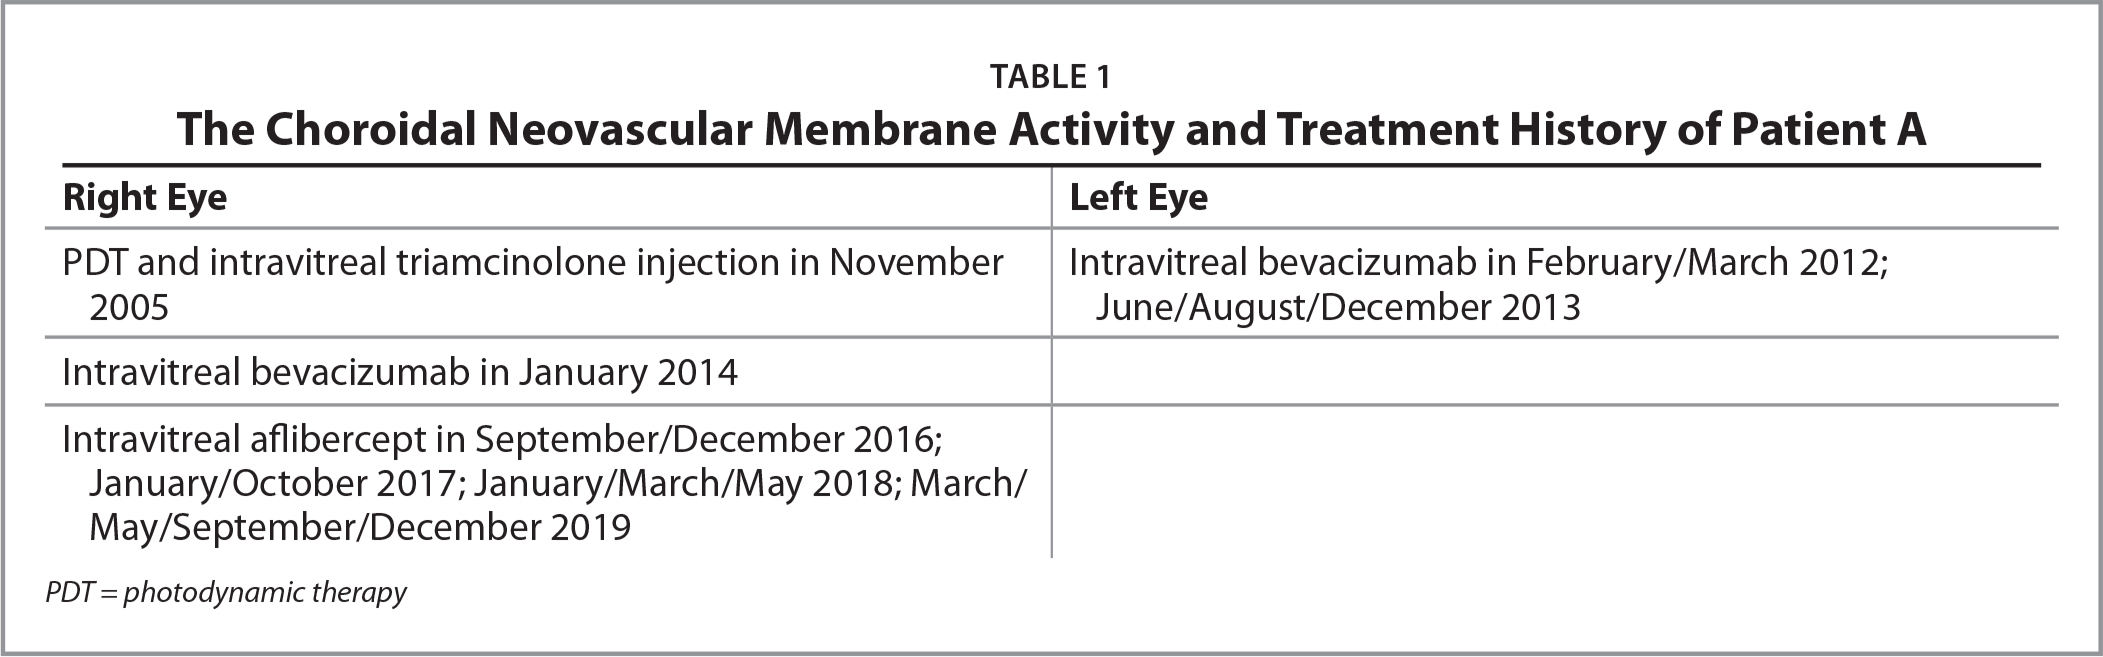 The Choroidal Neovascular Membrane Activity and Treatment History of Patient A